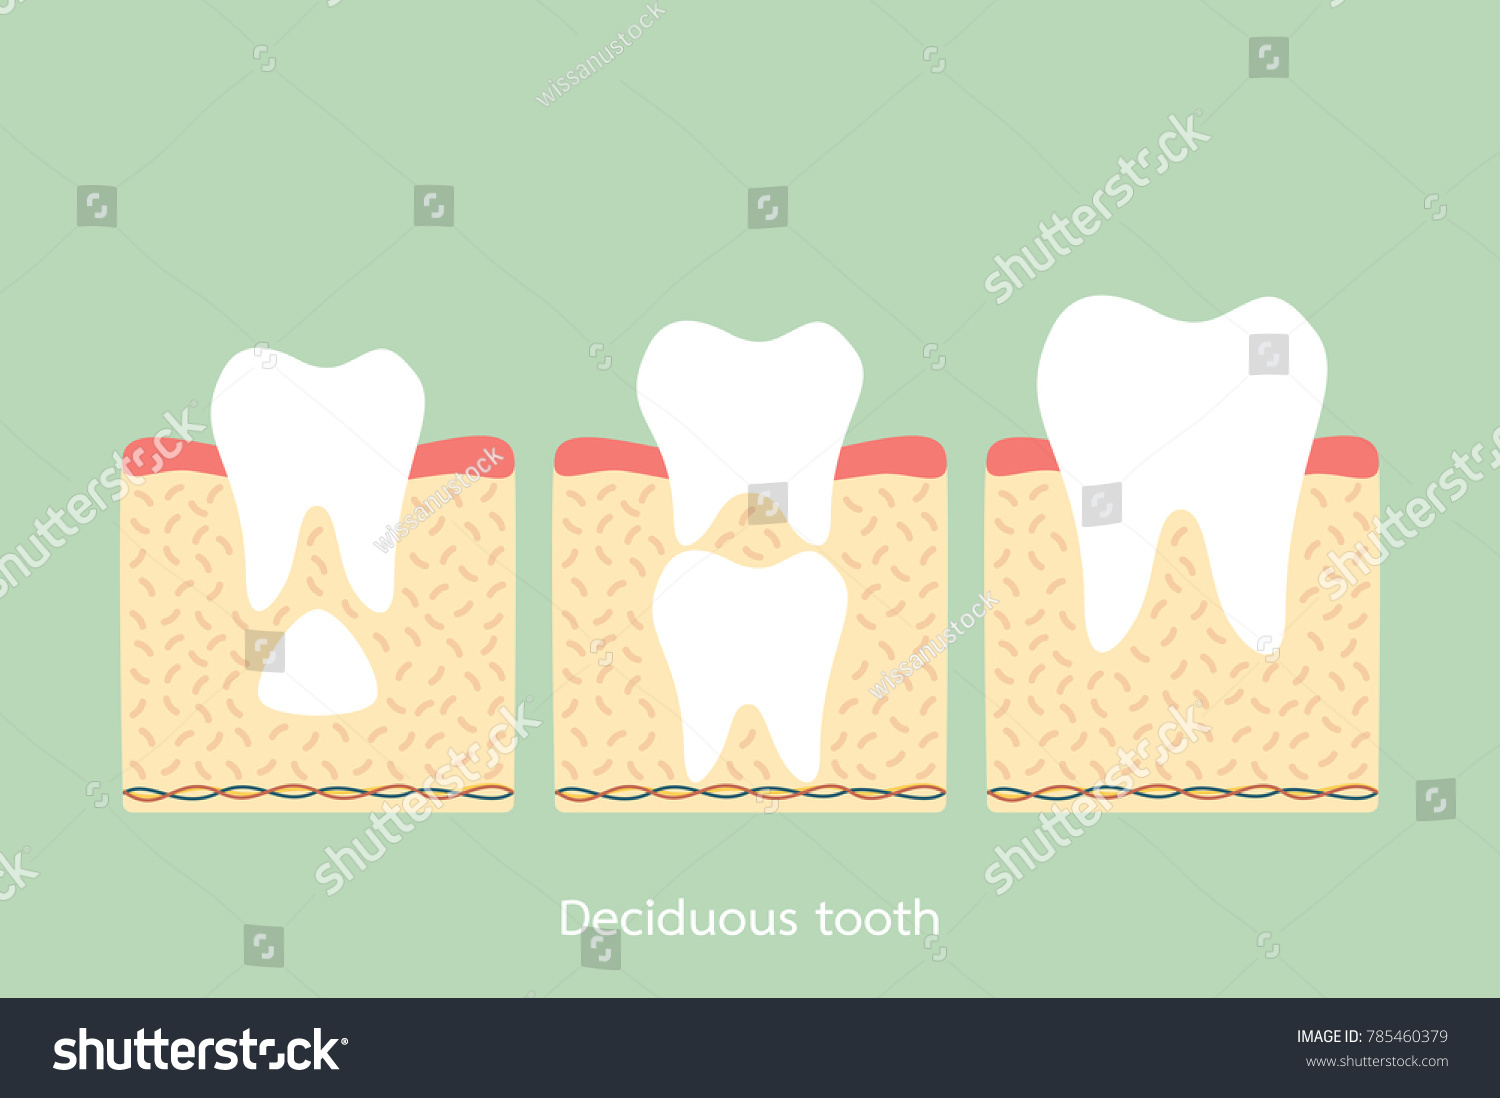 Permanent Tooth Located Below Primary Tooth Stock Vector Royalty